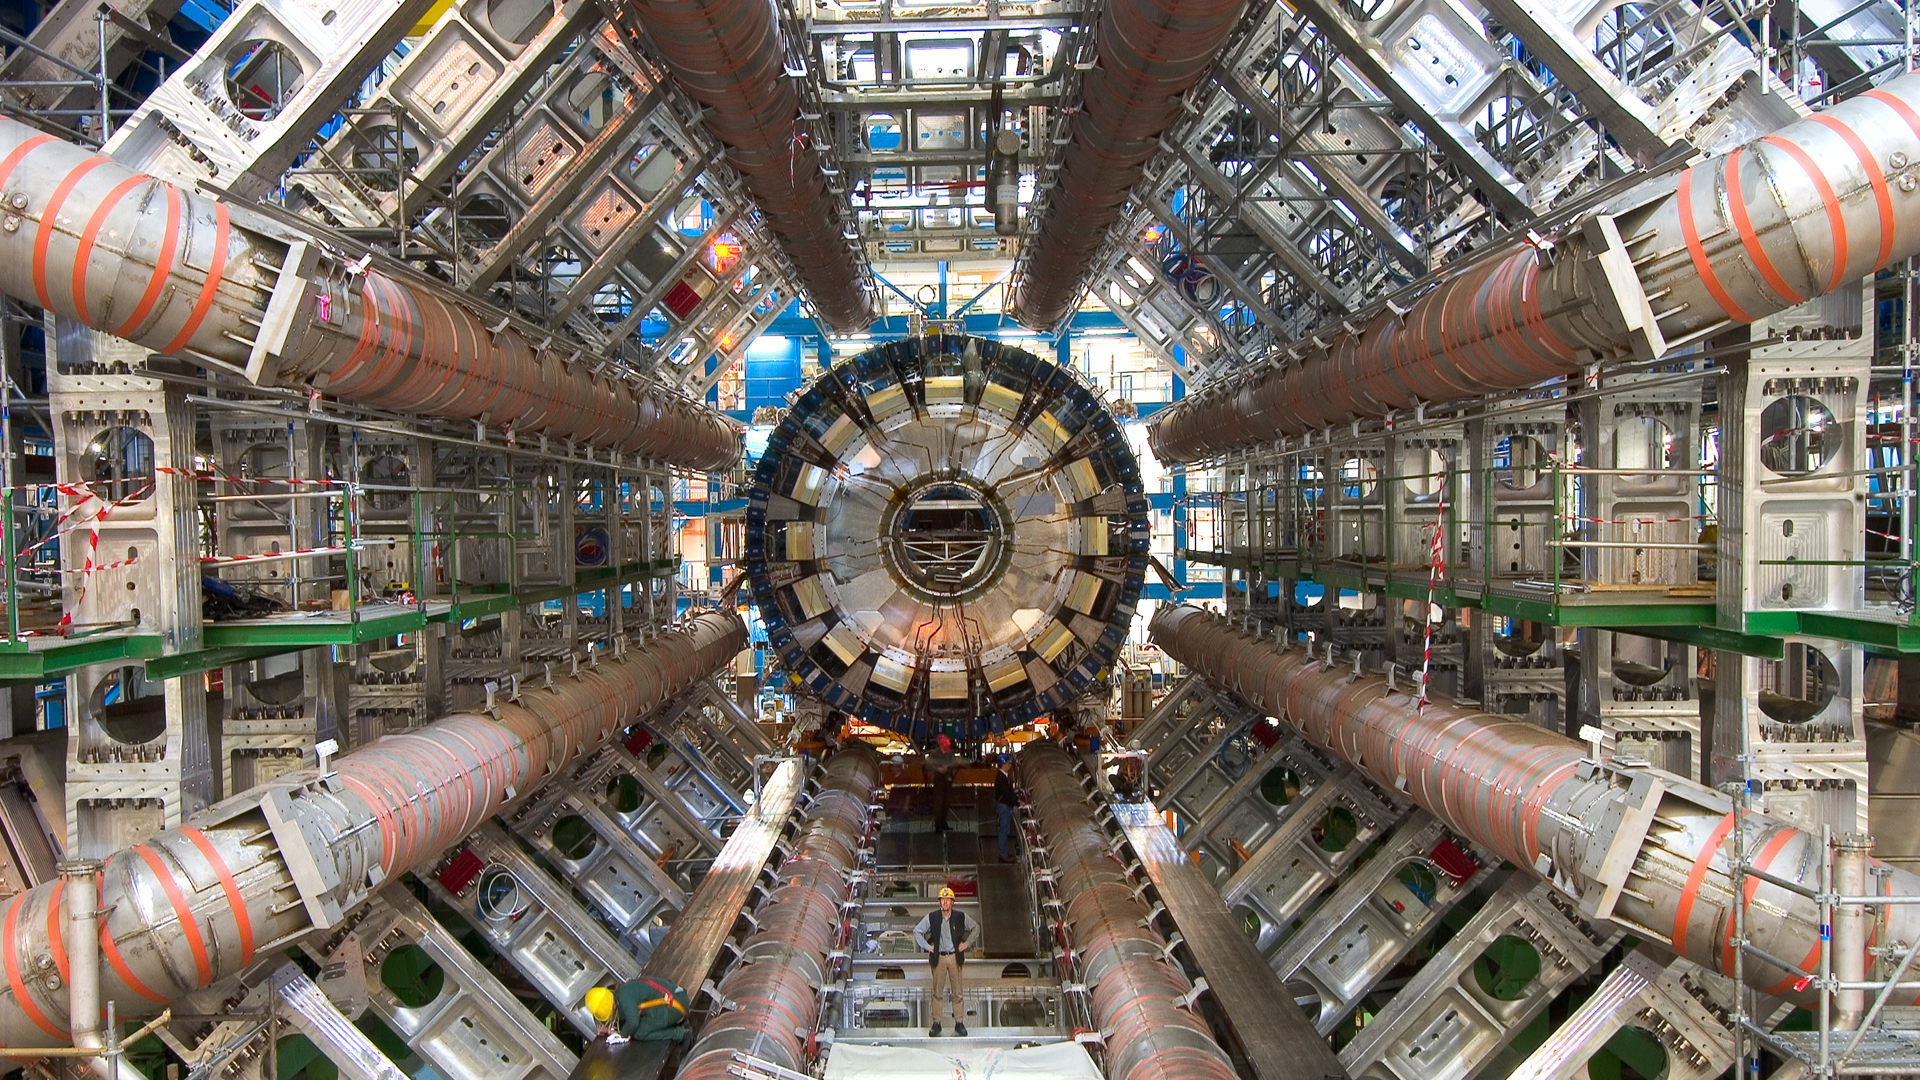 Romania to send 500 researchers to CERN following acceptance as a full member